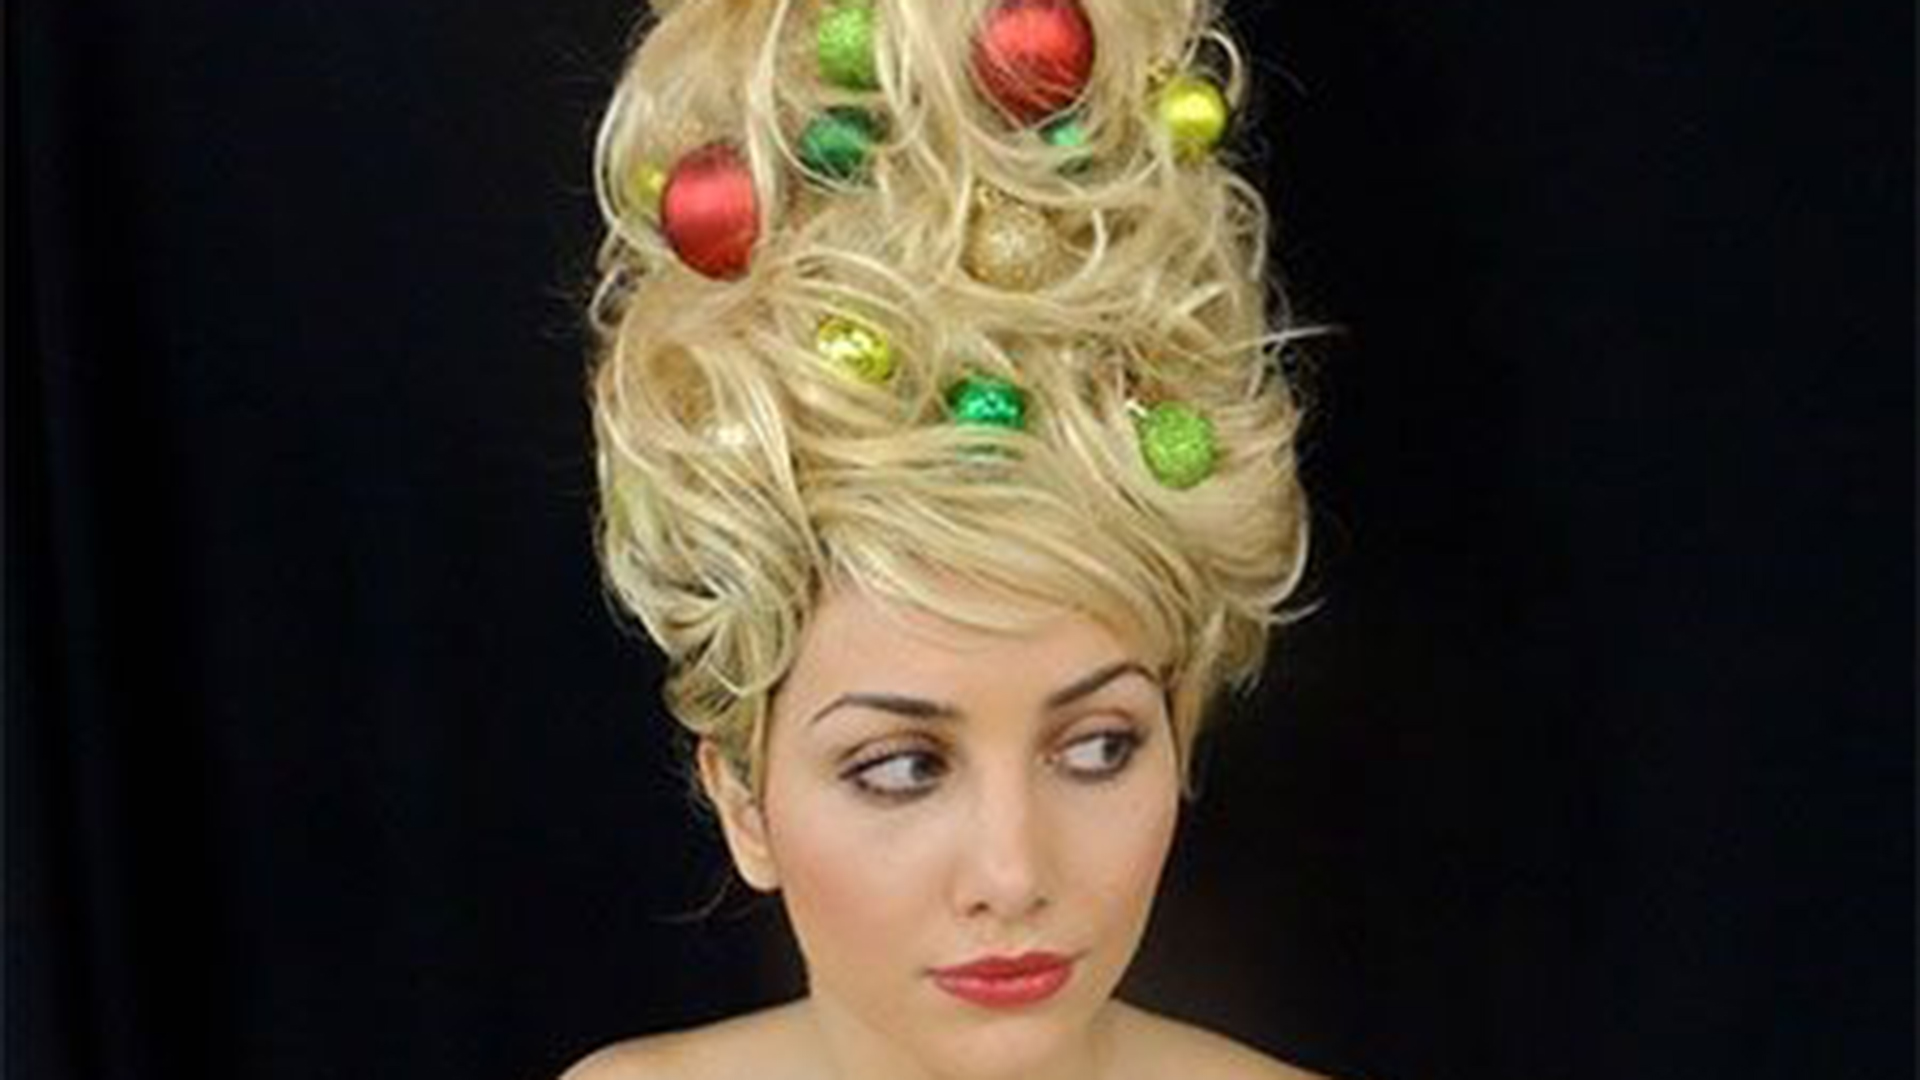 Christmas Hair.Christmas Tree Hair Is The New Holiday Trend